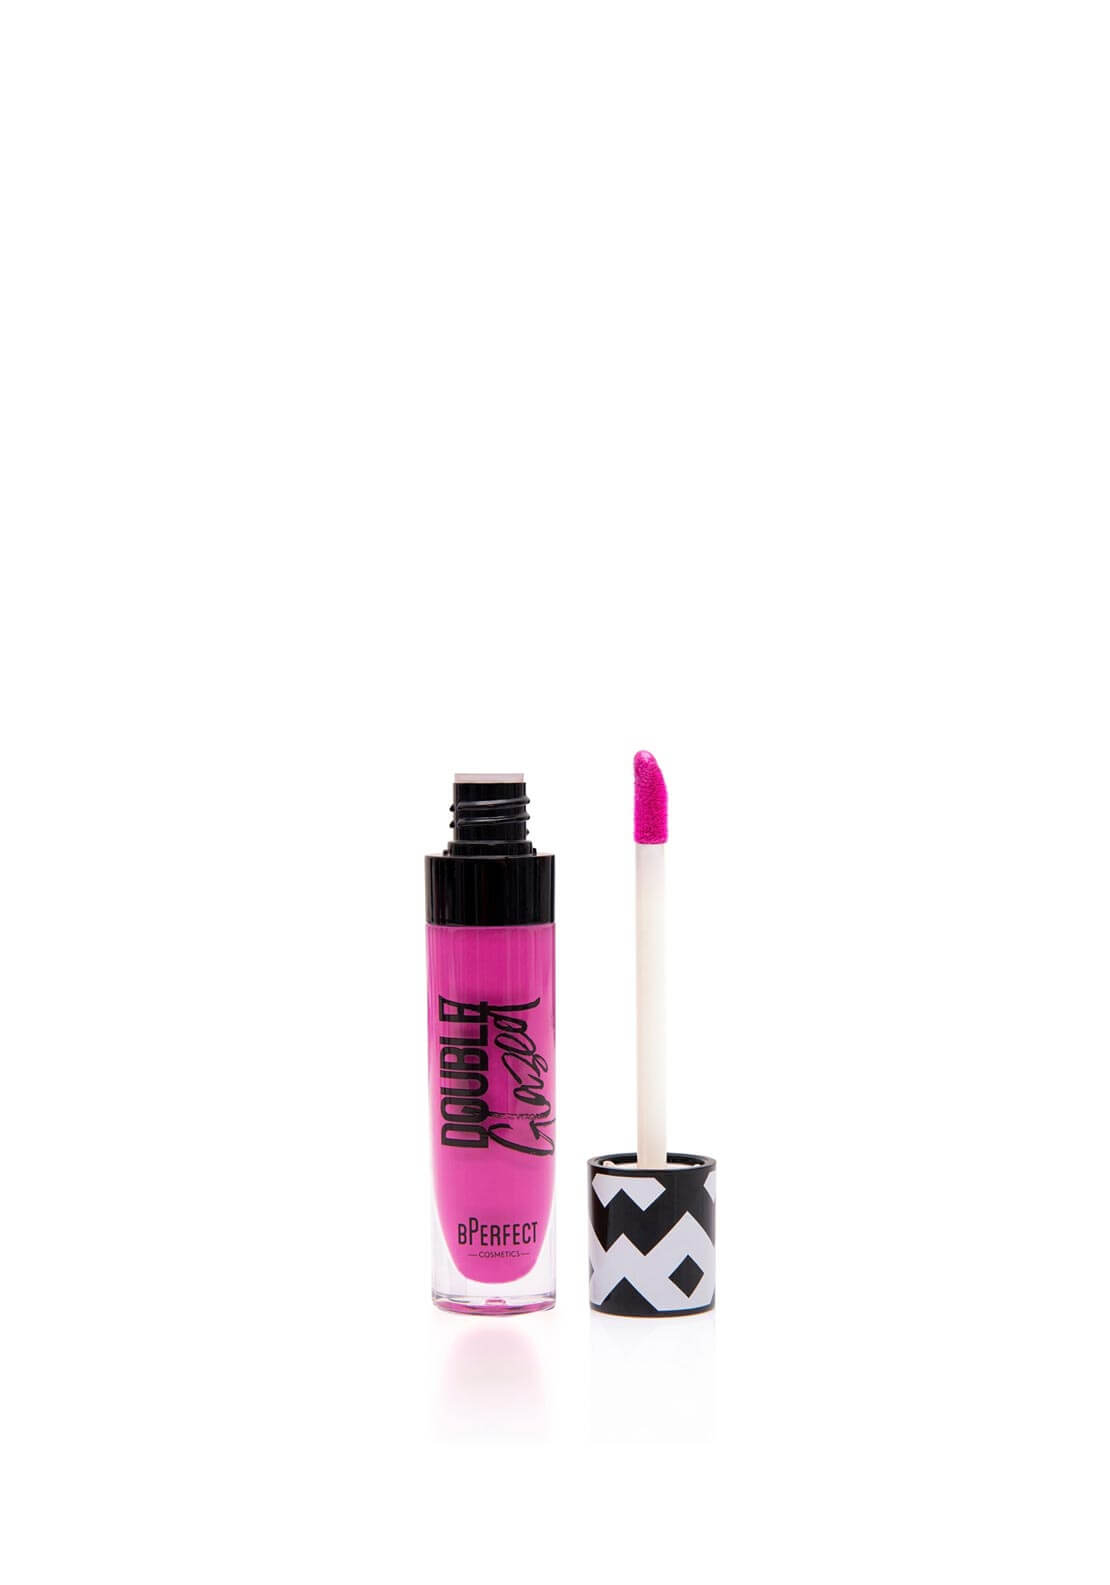 BPerfect Stacey Marie Double Glazed Lip Gloss, Petticoat